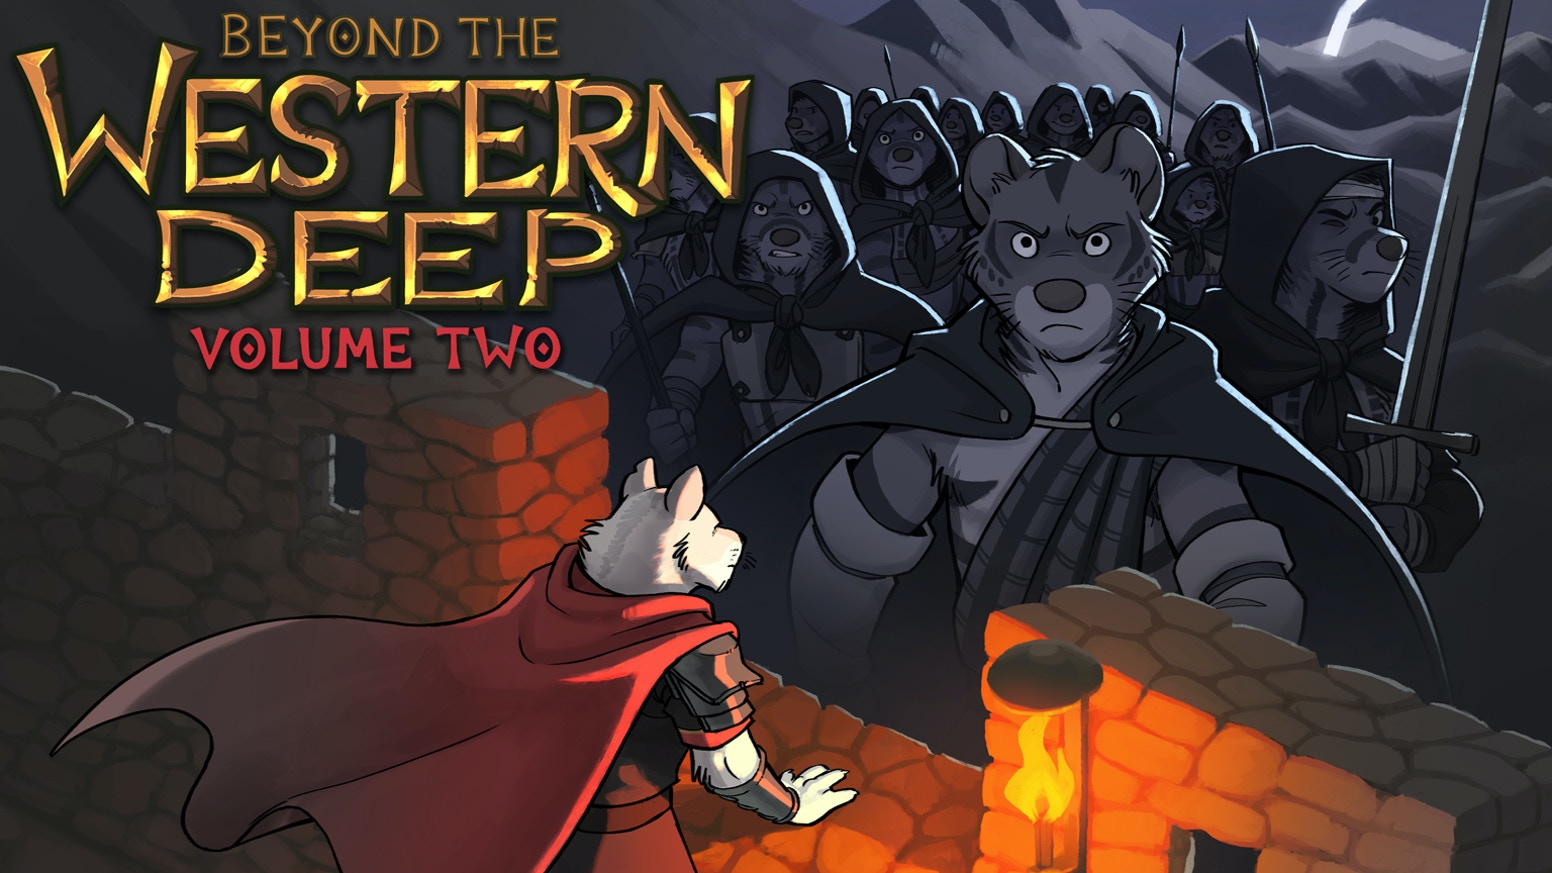 The all-ages fantasy webcomic BEYOND THE WESTERN DEEP returns to Kickstarter with its second hardcover volume!